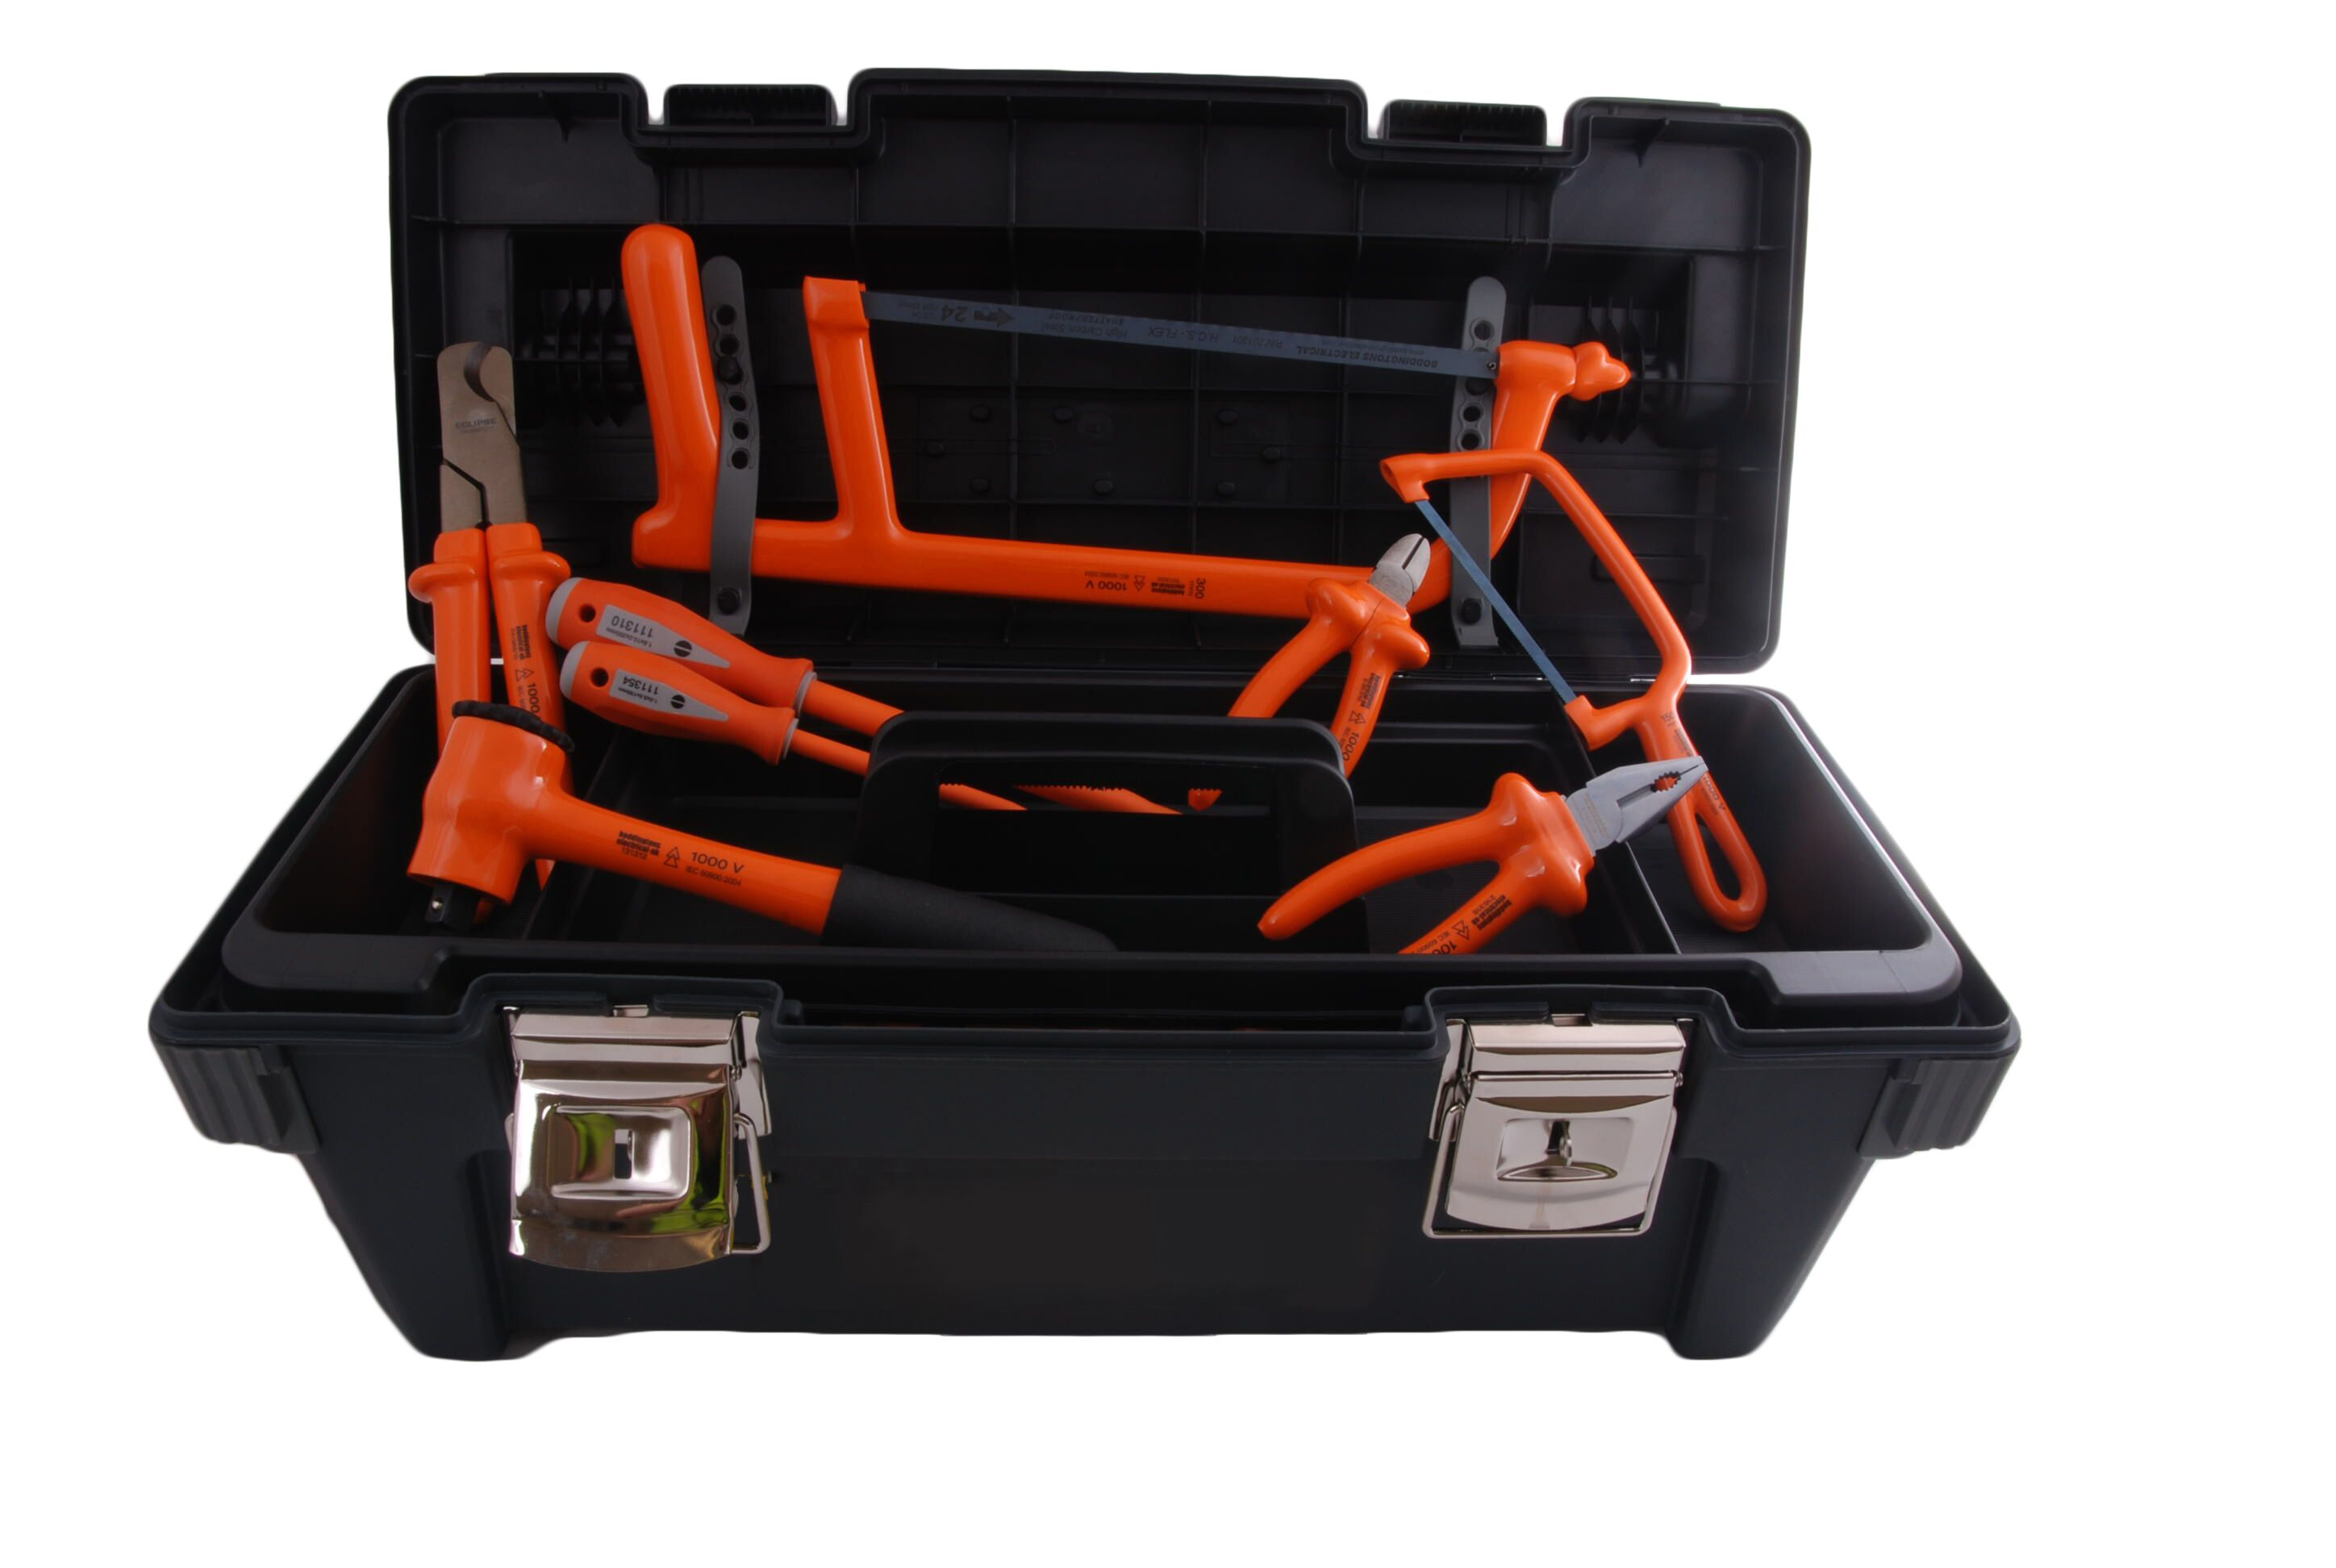 Boddingtons Electrical 240K04 36 Piece Jointer's Tool Kit 4 - Insulated Tools For Live Line Working & Electrical Safety